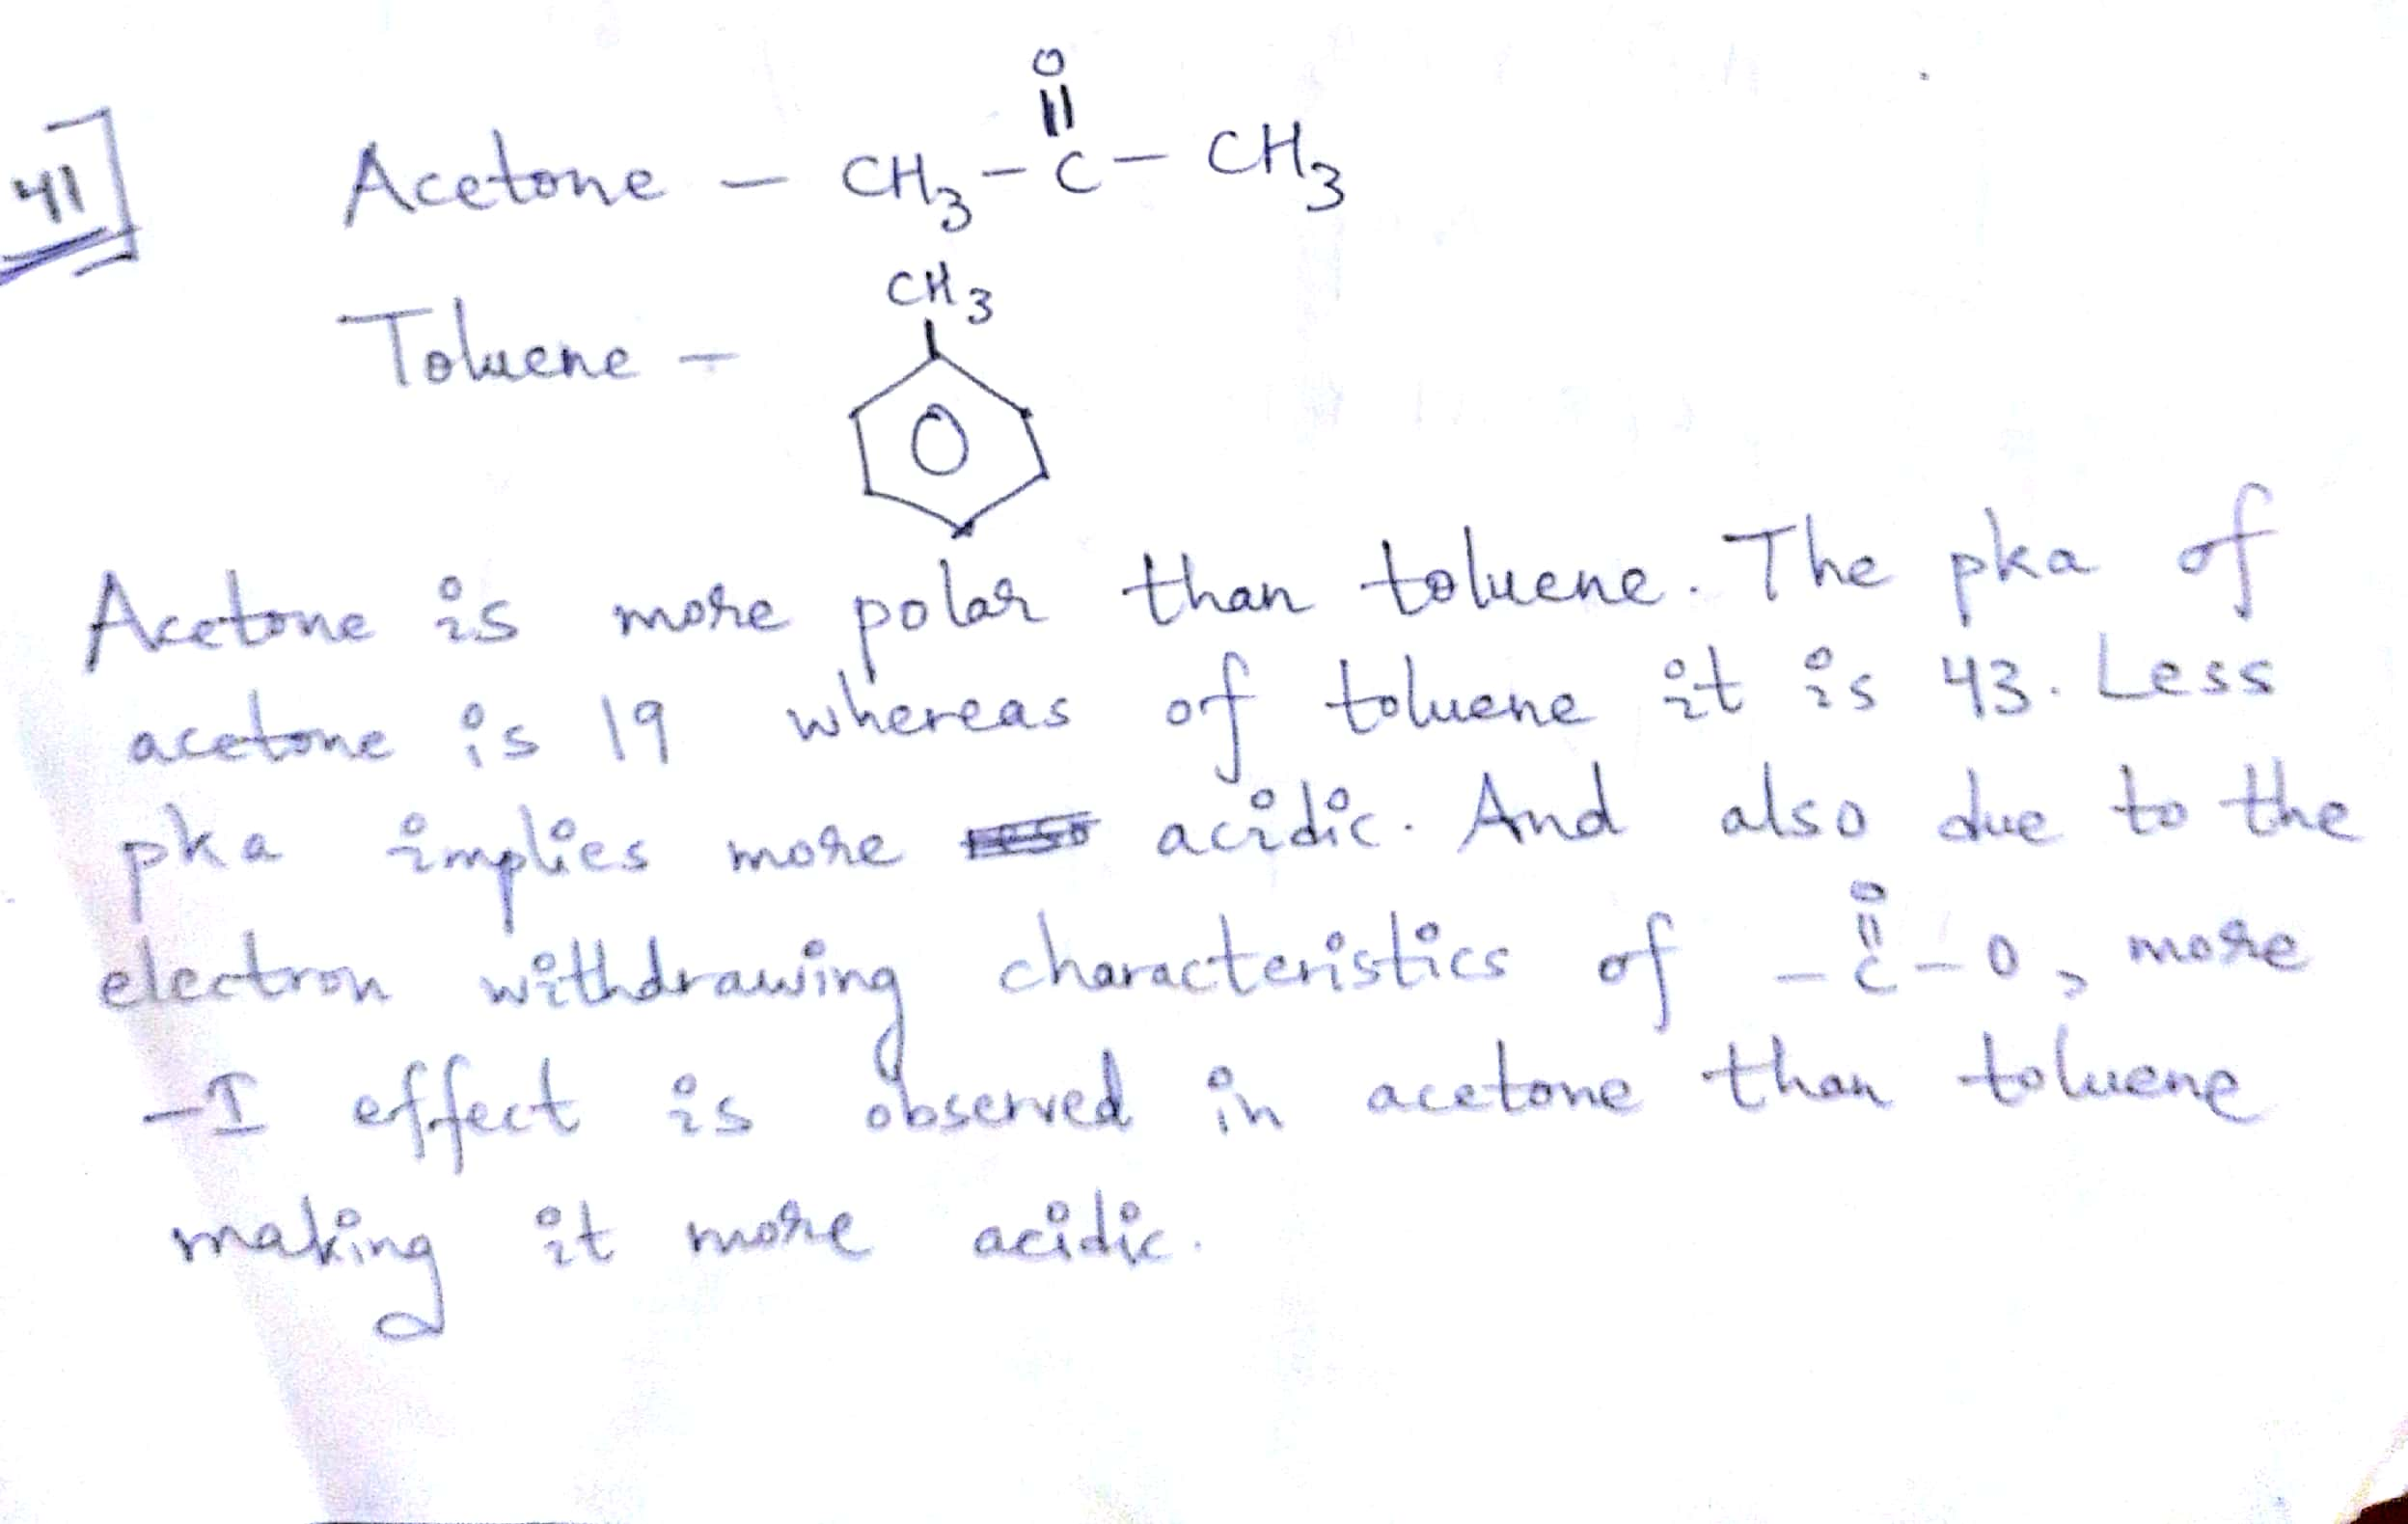 Why is acetone more acidic than toluene??